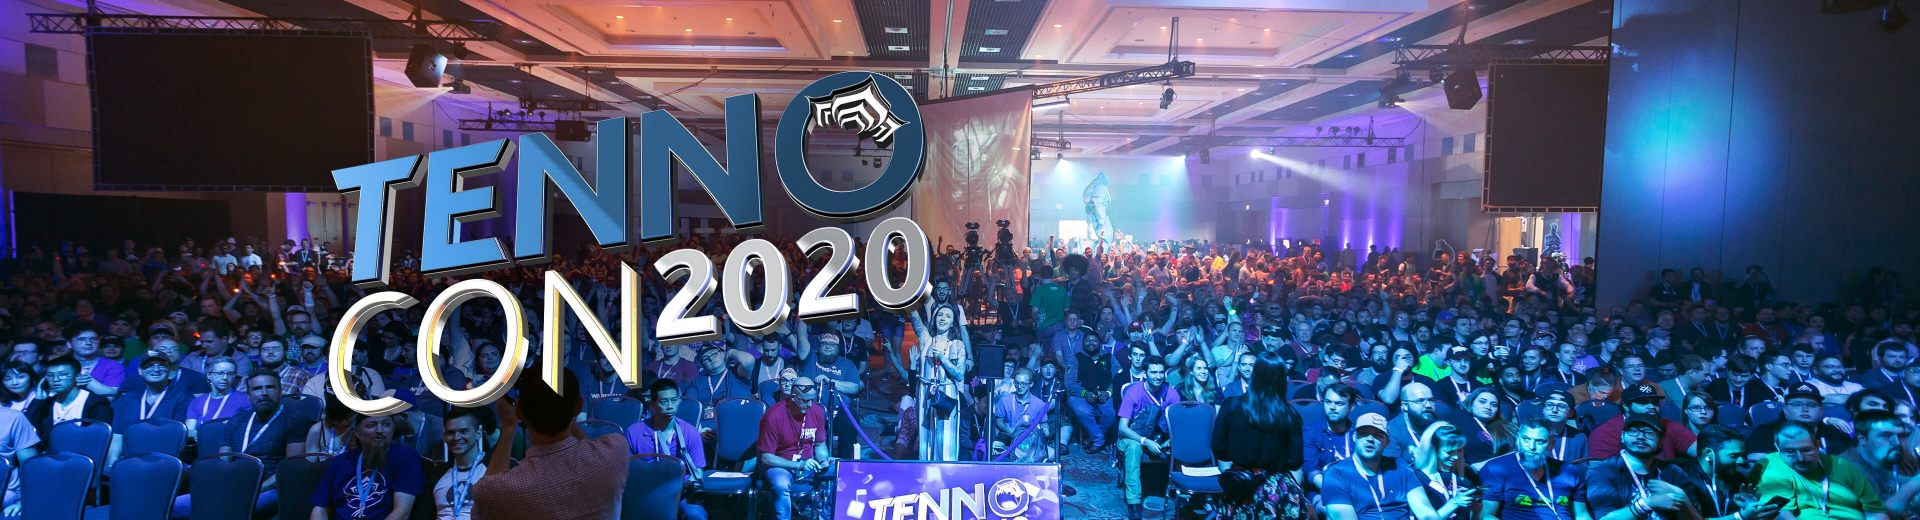 TennoCon2020_DateAnnounce_newsheader_v1.jpg